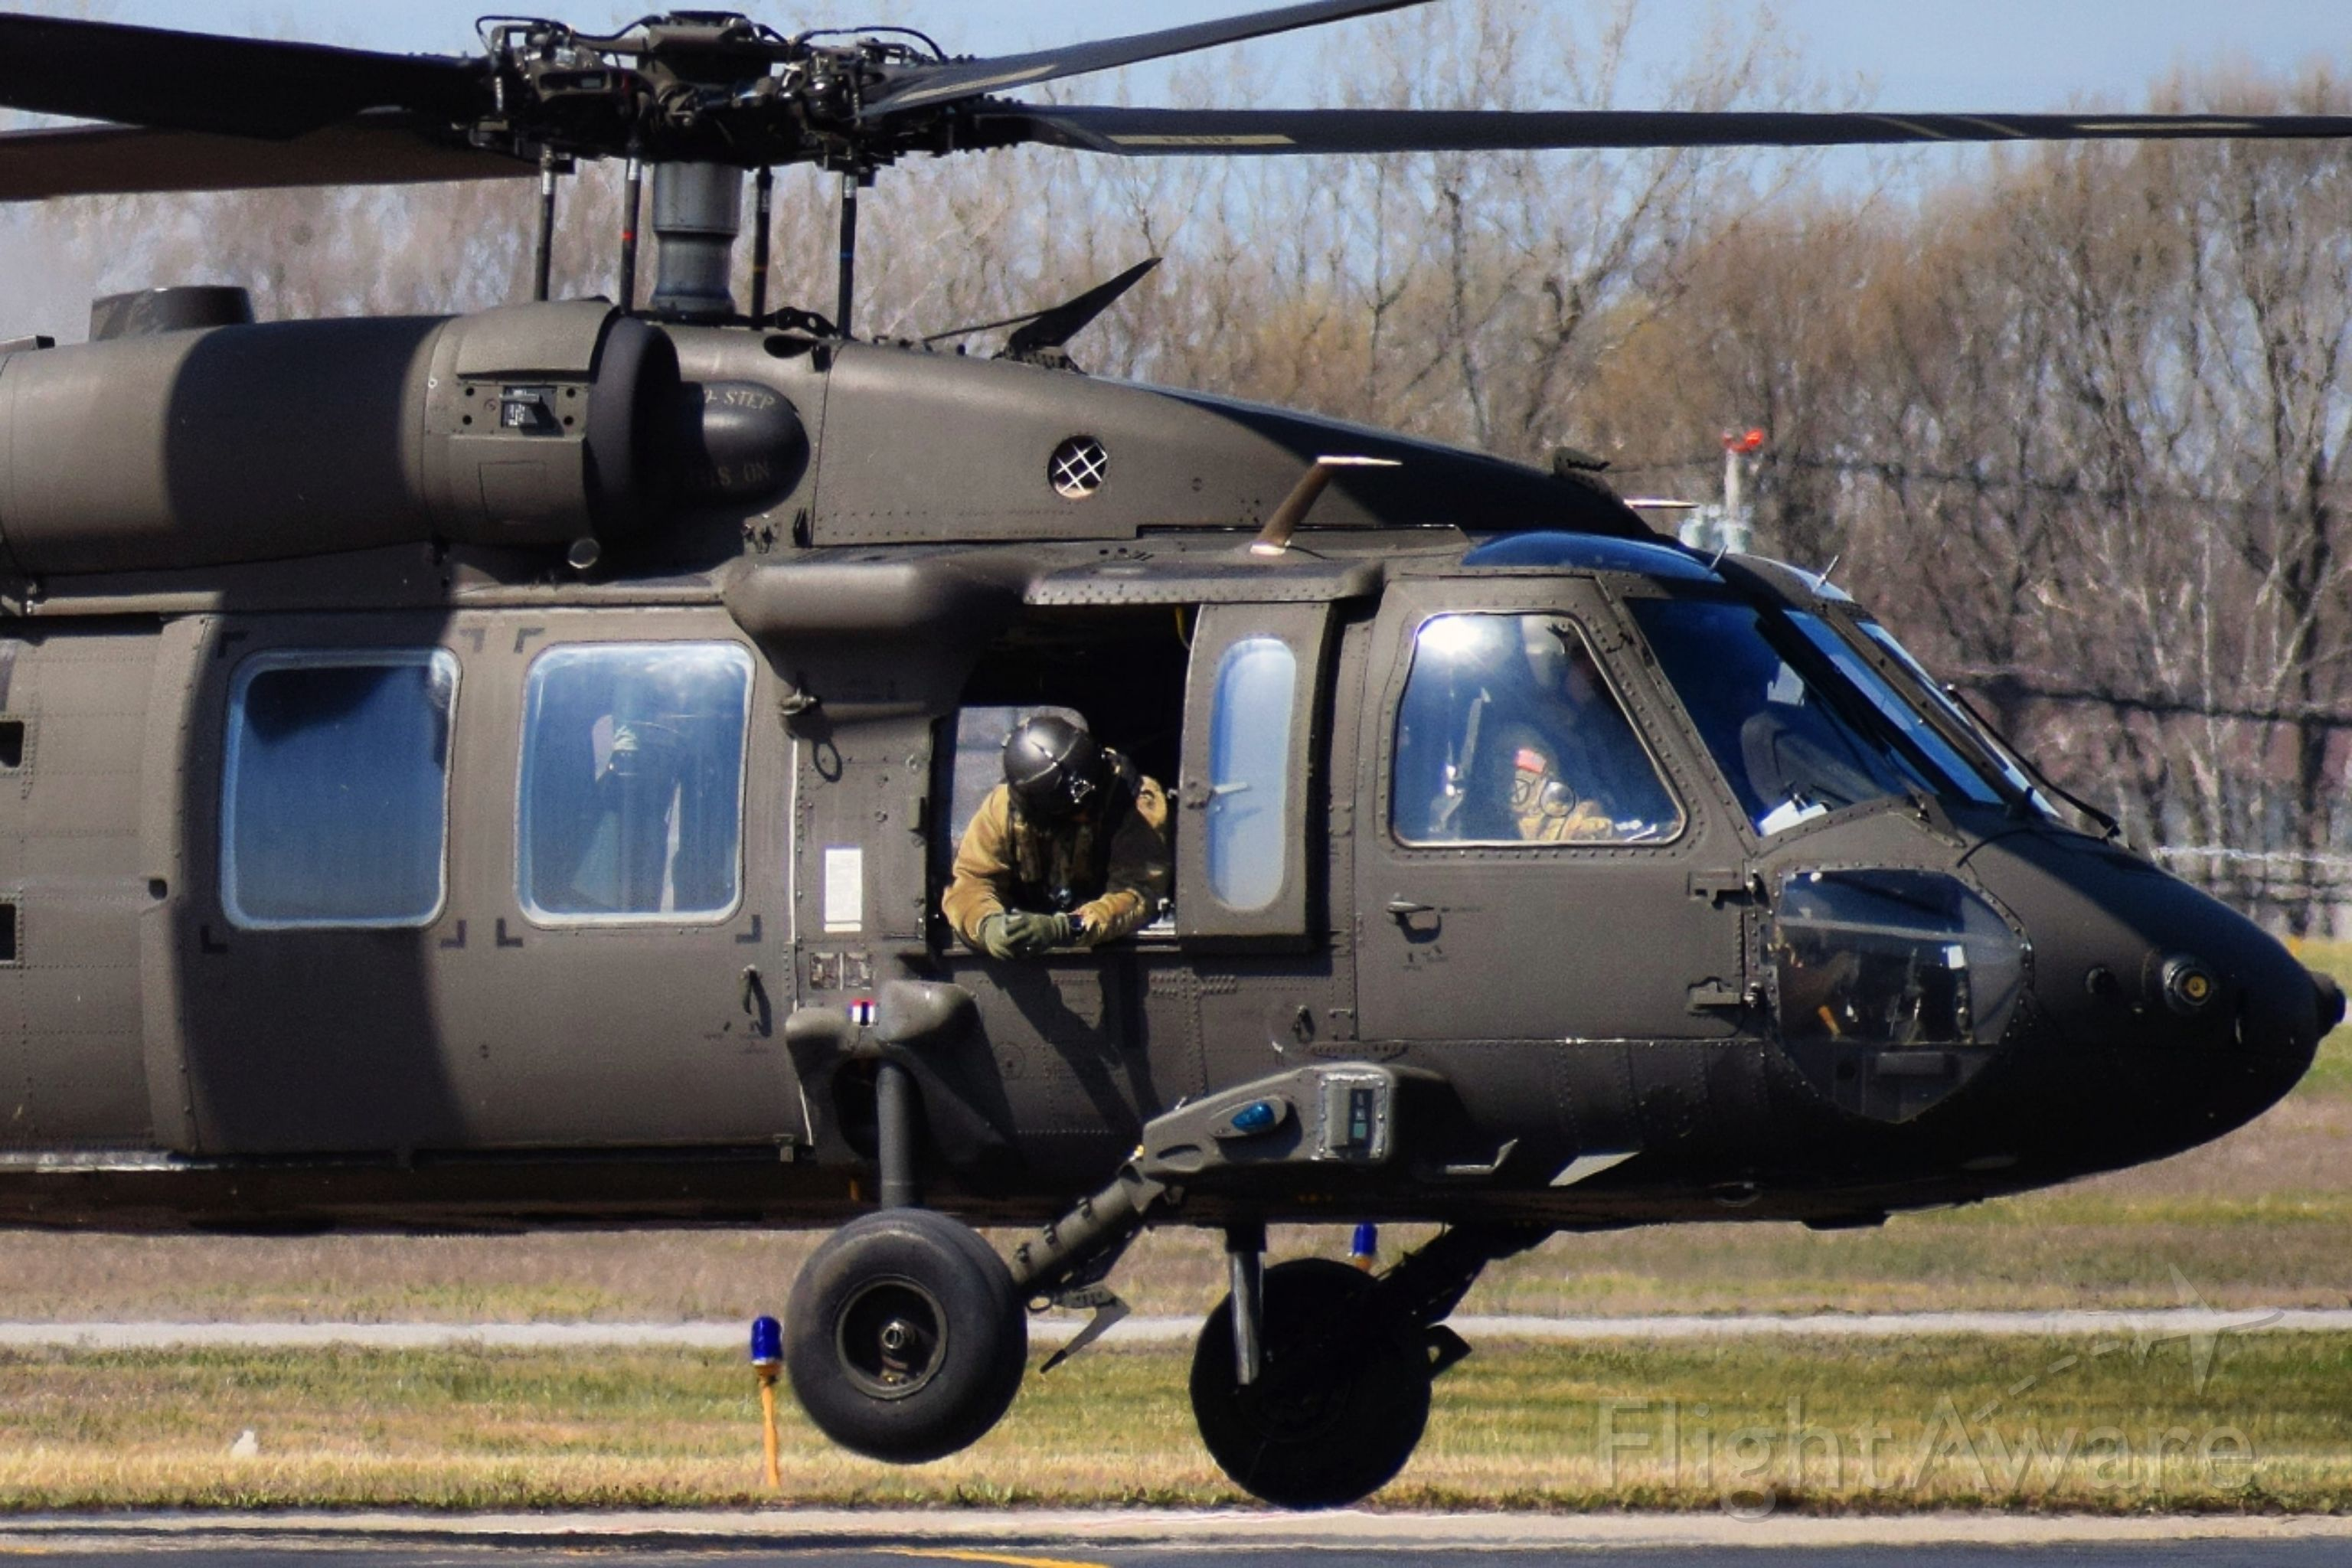 """Sikorsky S-70 (1602844) - 16-02844 / United States Army<br />Sikorsky UH-60M """" Blackhawk """"<br />10th Mountain Div. / Combat Aviation Brigade"""